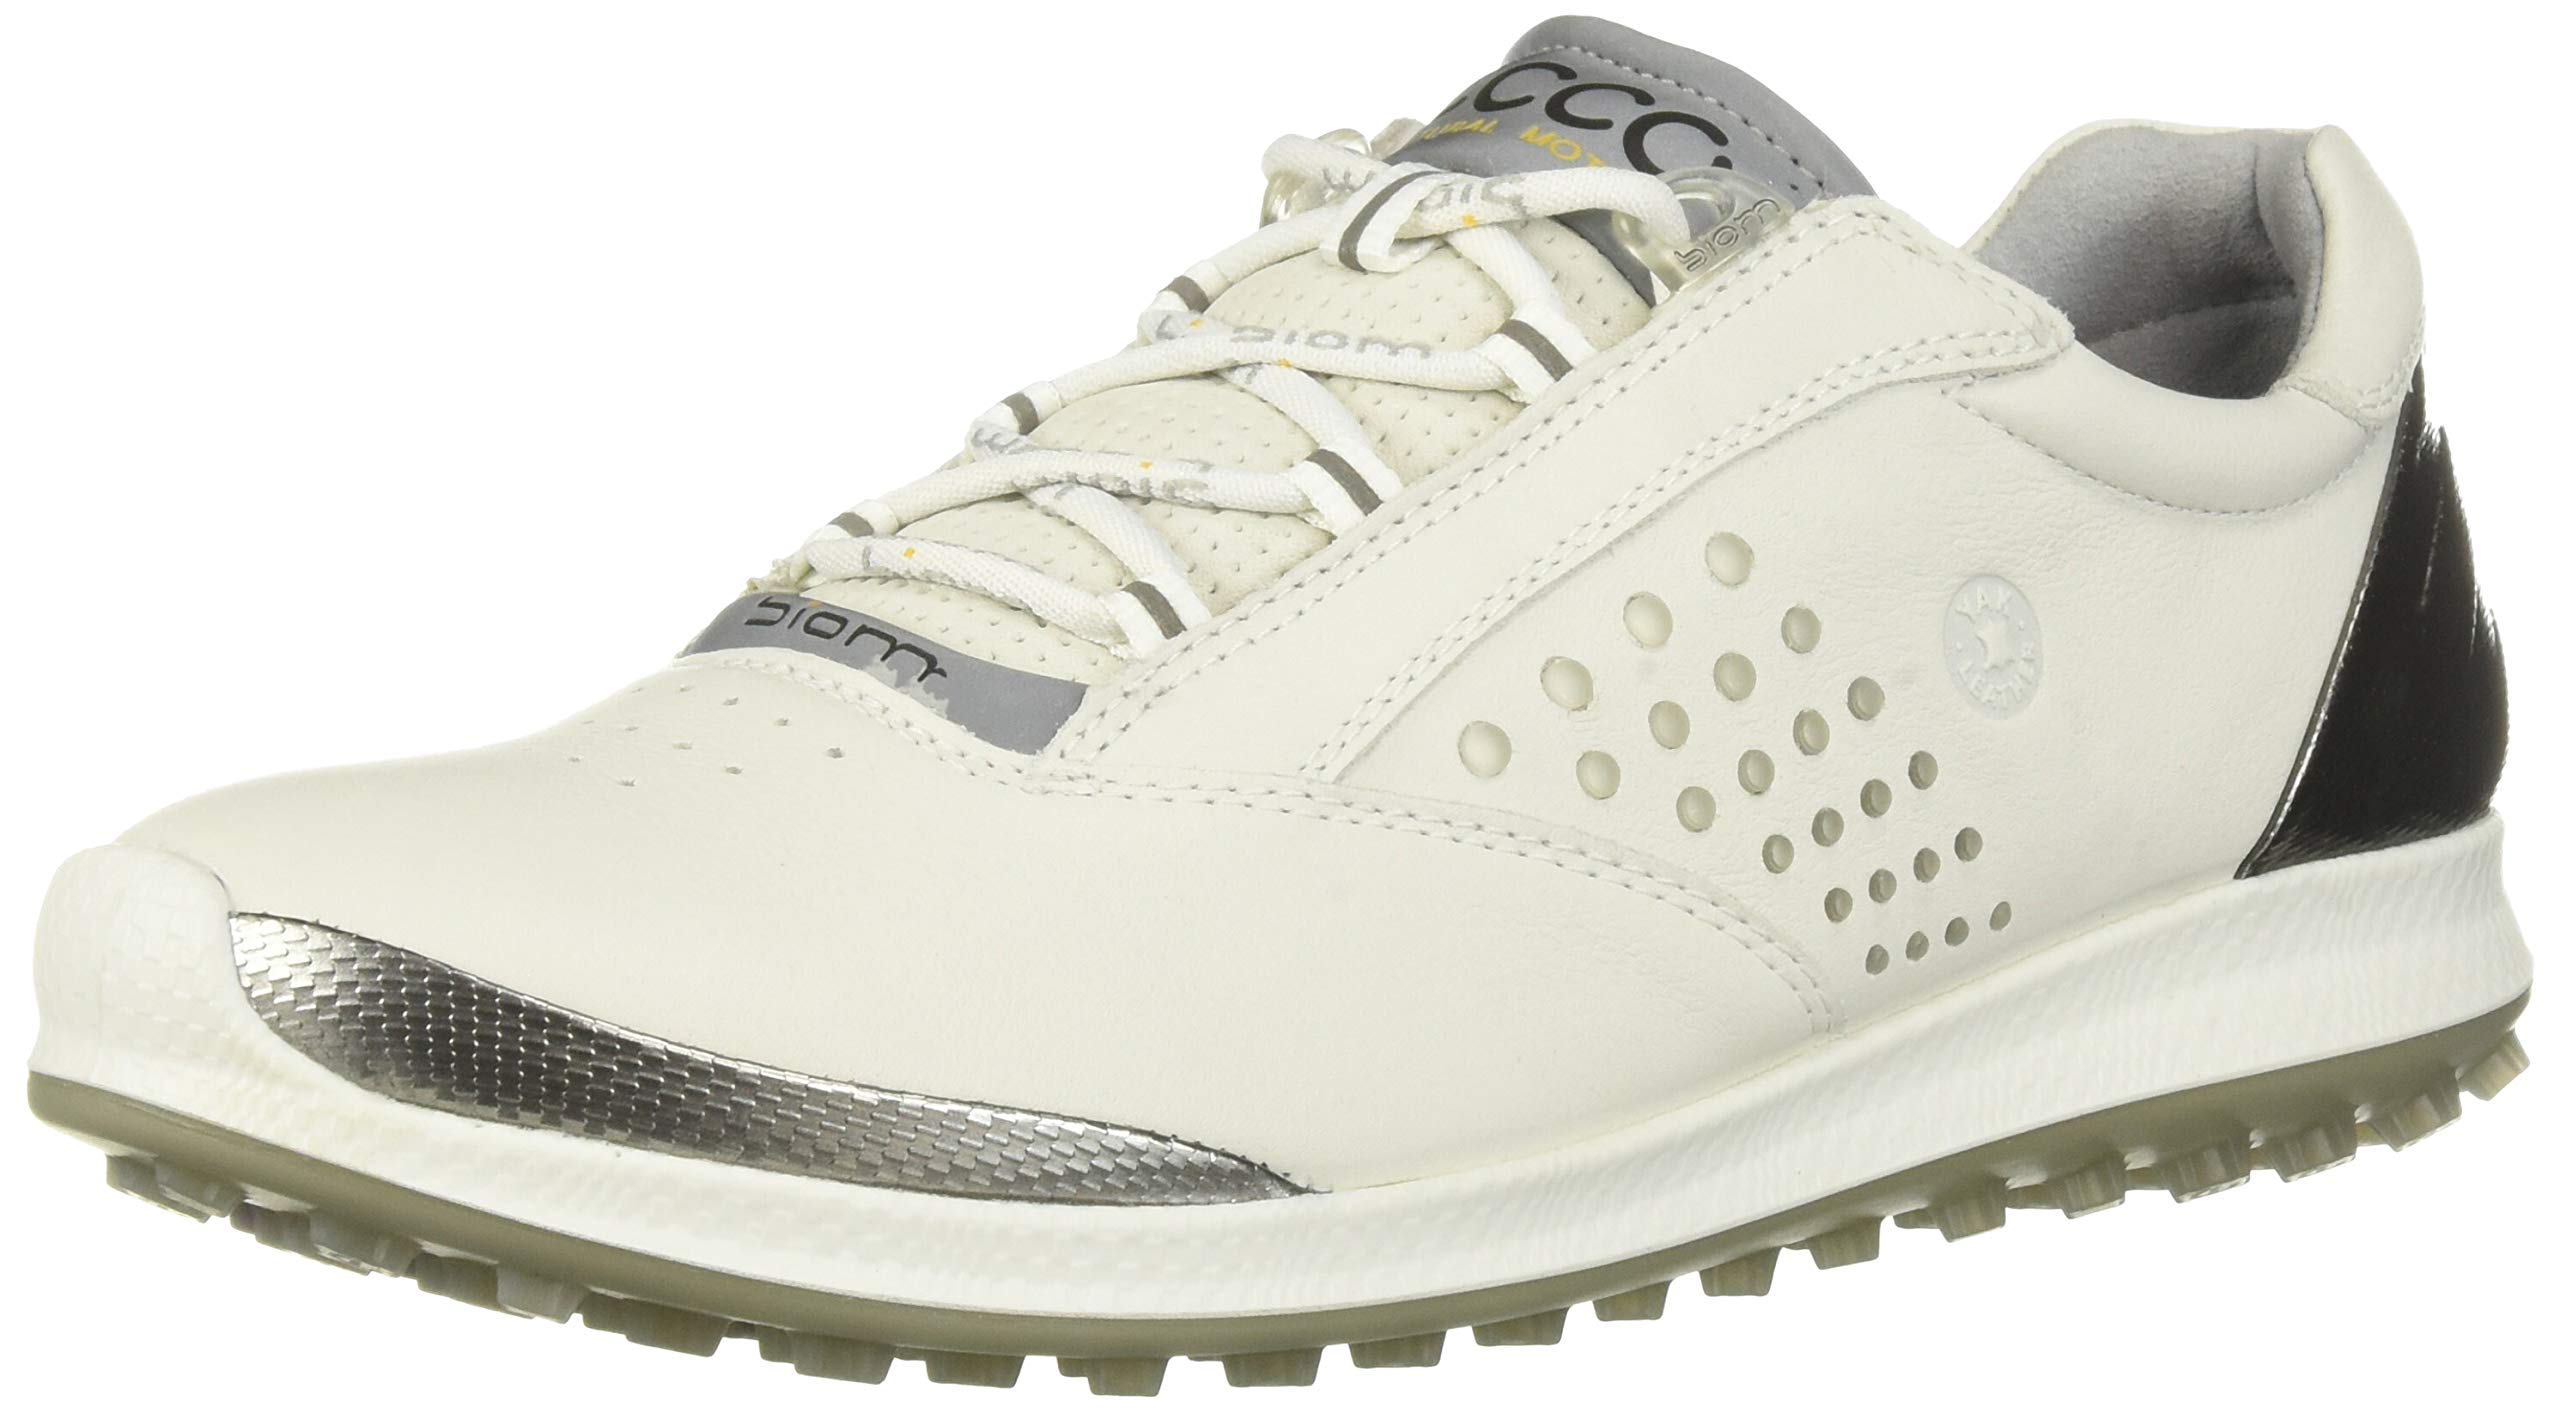 ECCO Women's Biom Hybrid 2 Golf Shoe, White Yak Leather, 8 M US by ECCO